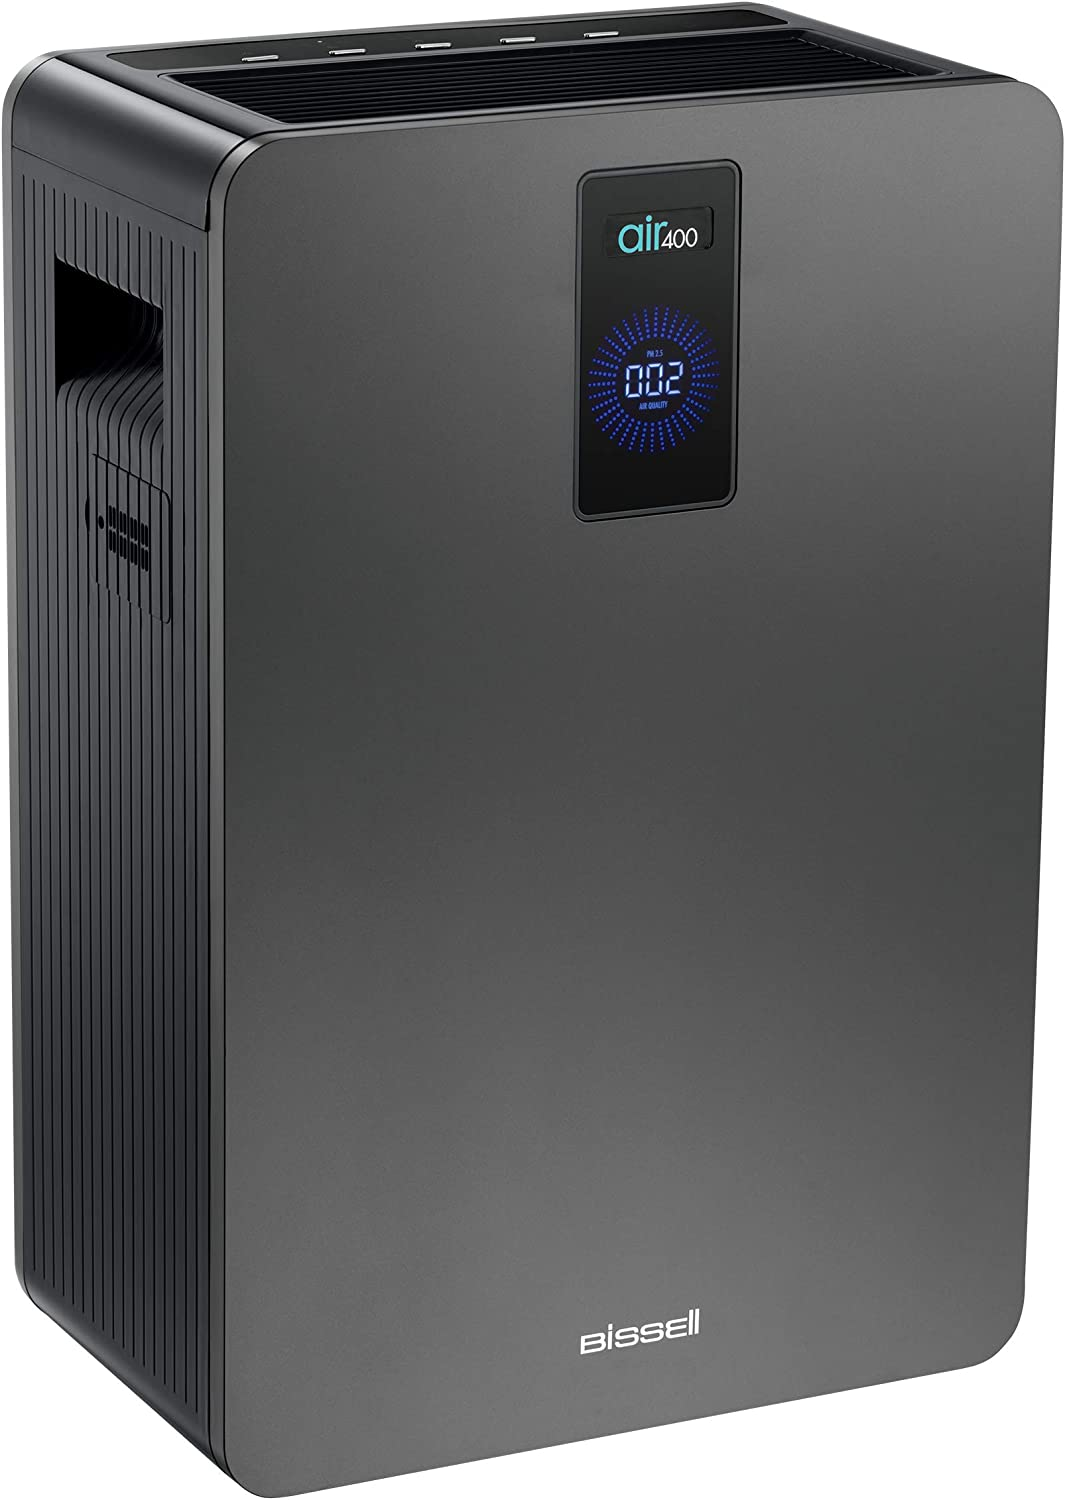 Bissell air400 Professional Air Purifier with HEPA and Carbon Filters